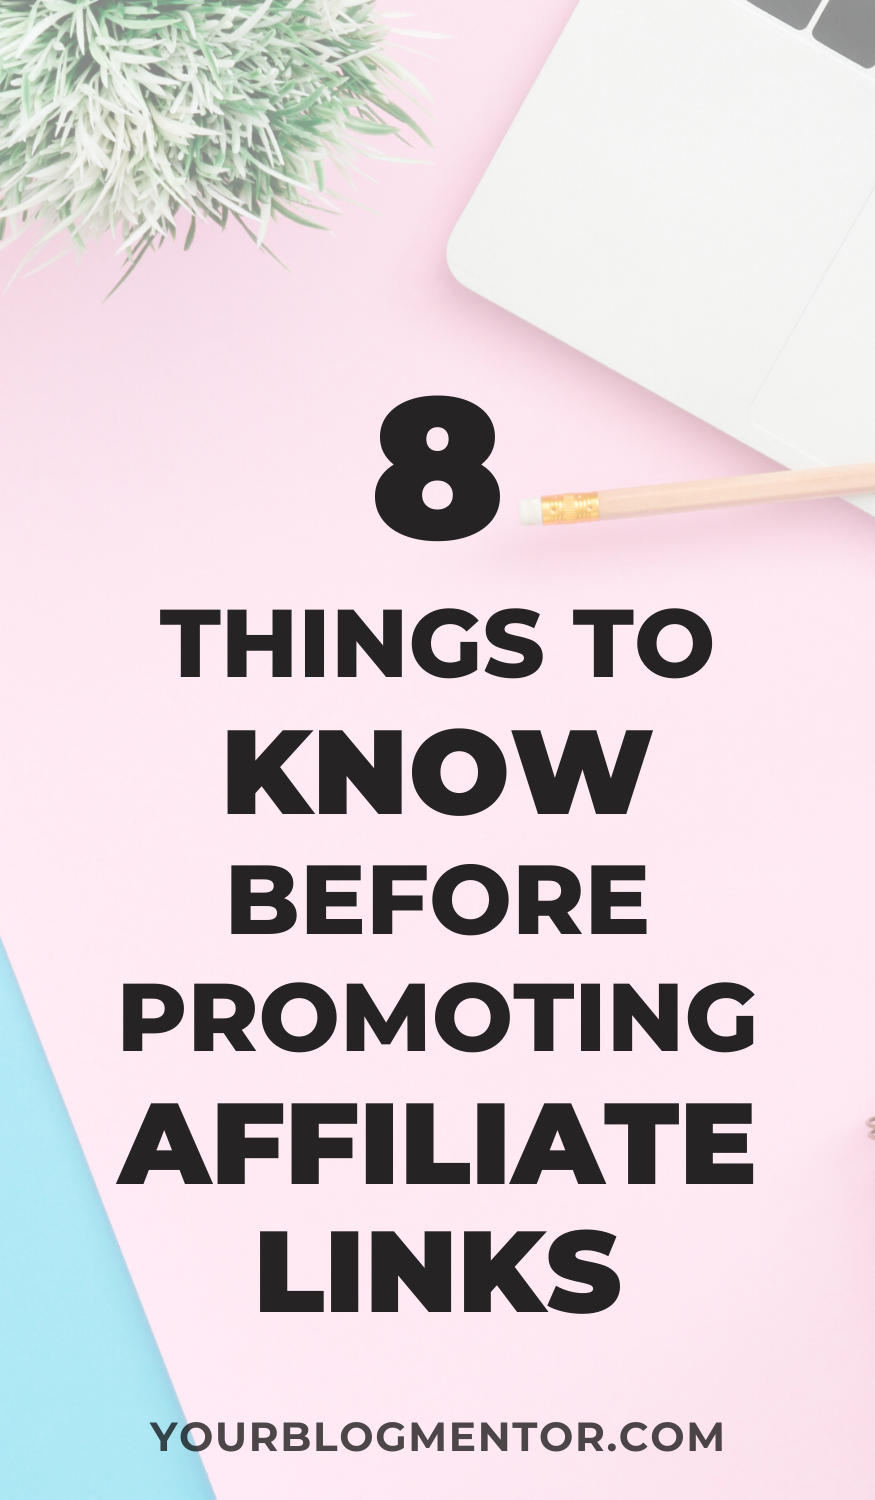 Planning to use affiliate marketing to monetize your blog? Here are 8 things you need to know before promoting affiliate links on your blog.  #affiliatemarketing #affiliate #marketing #affiliatemarketing101 #makemoneyonline